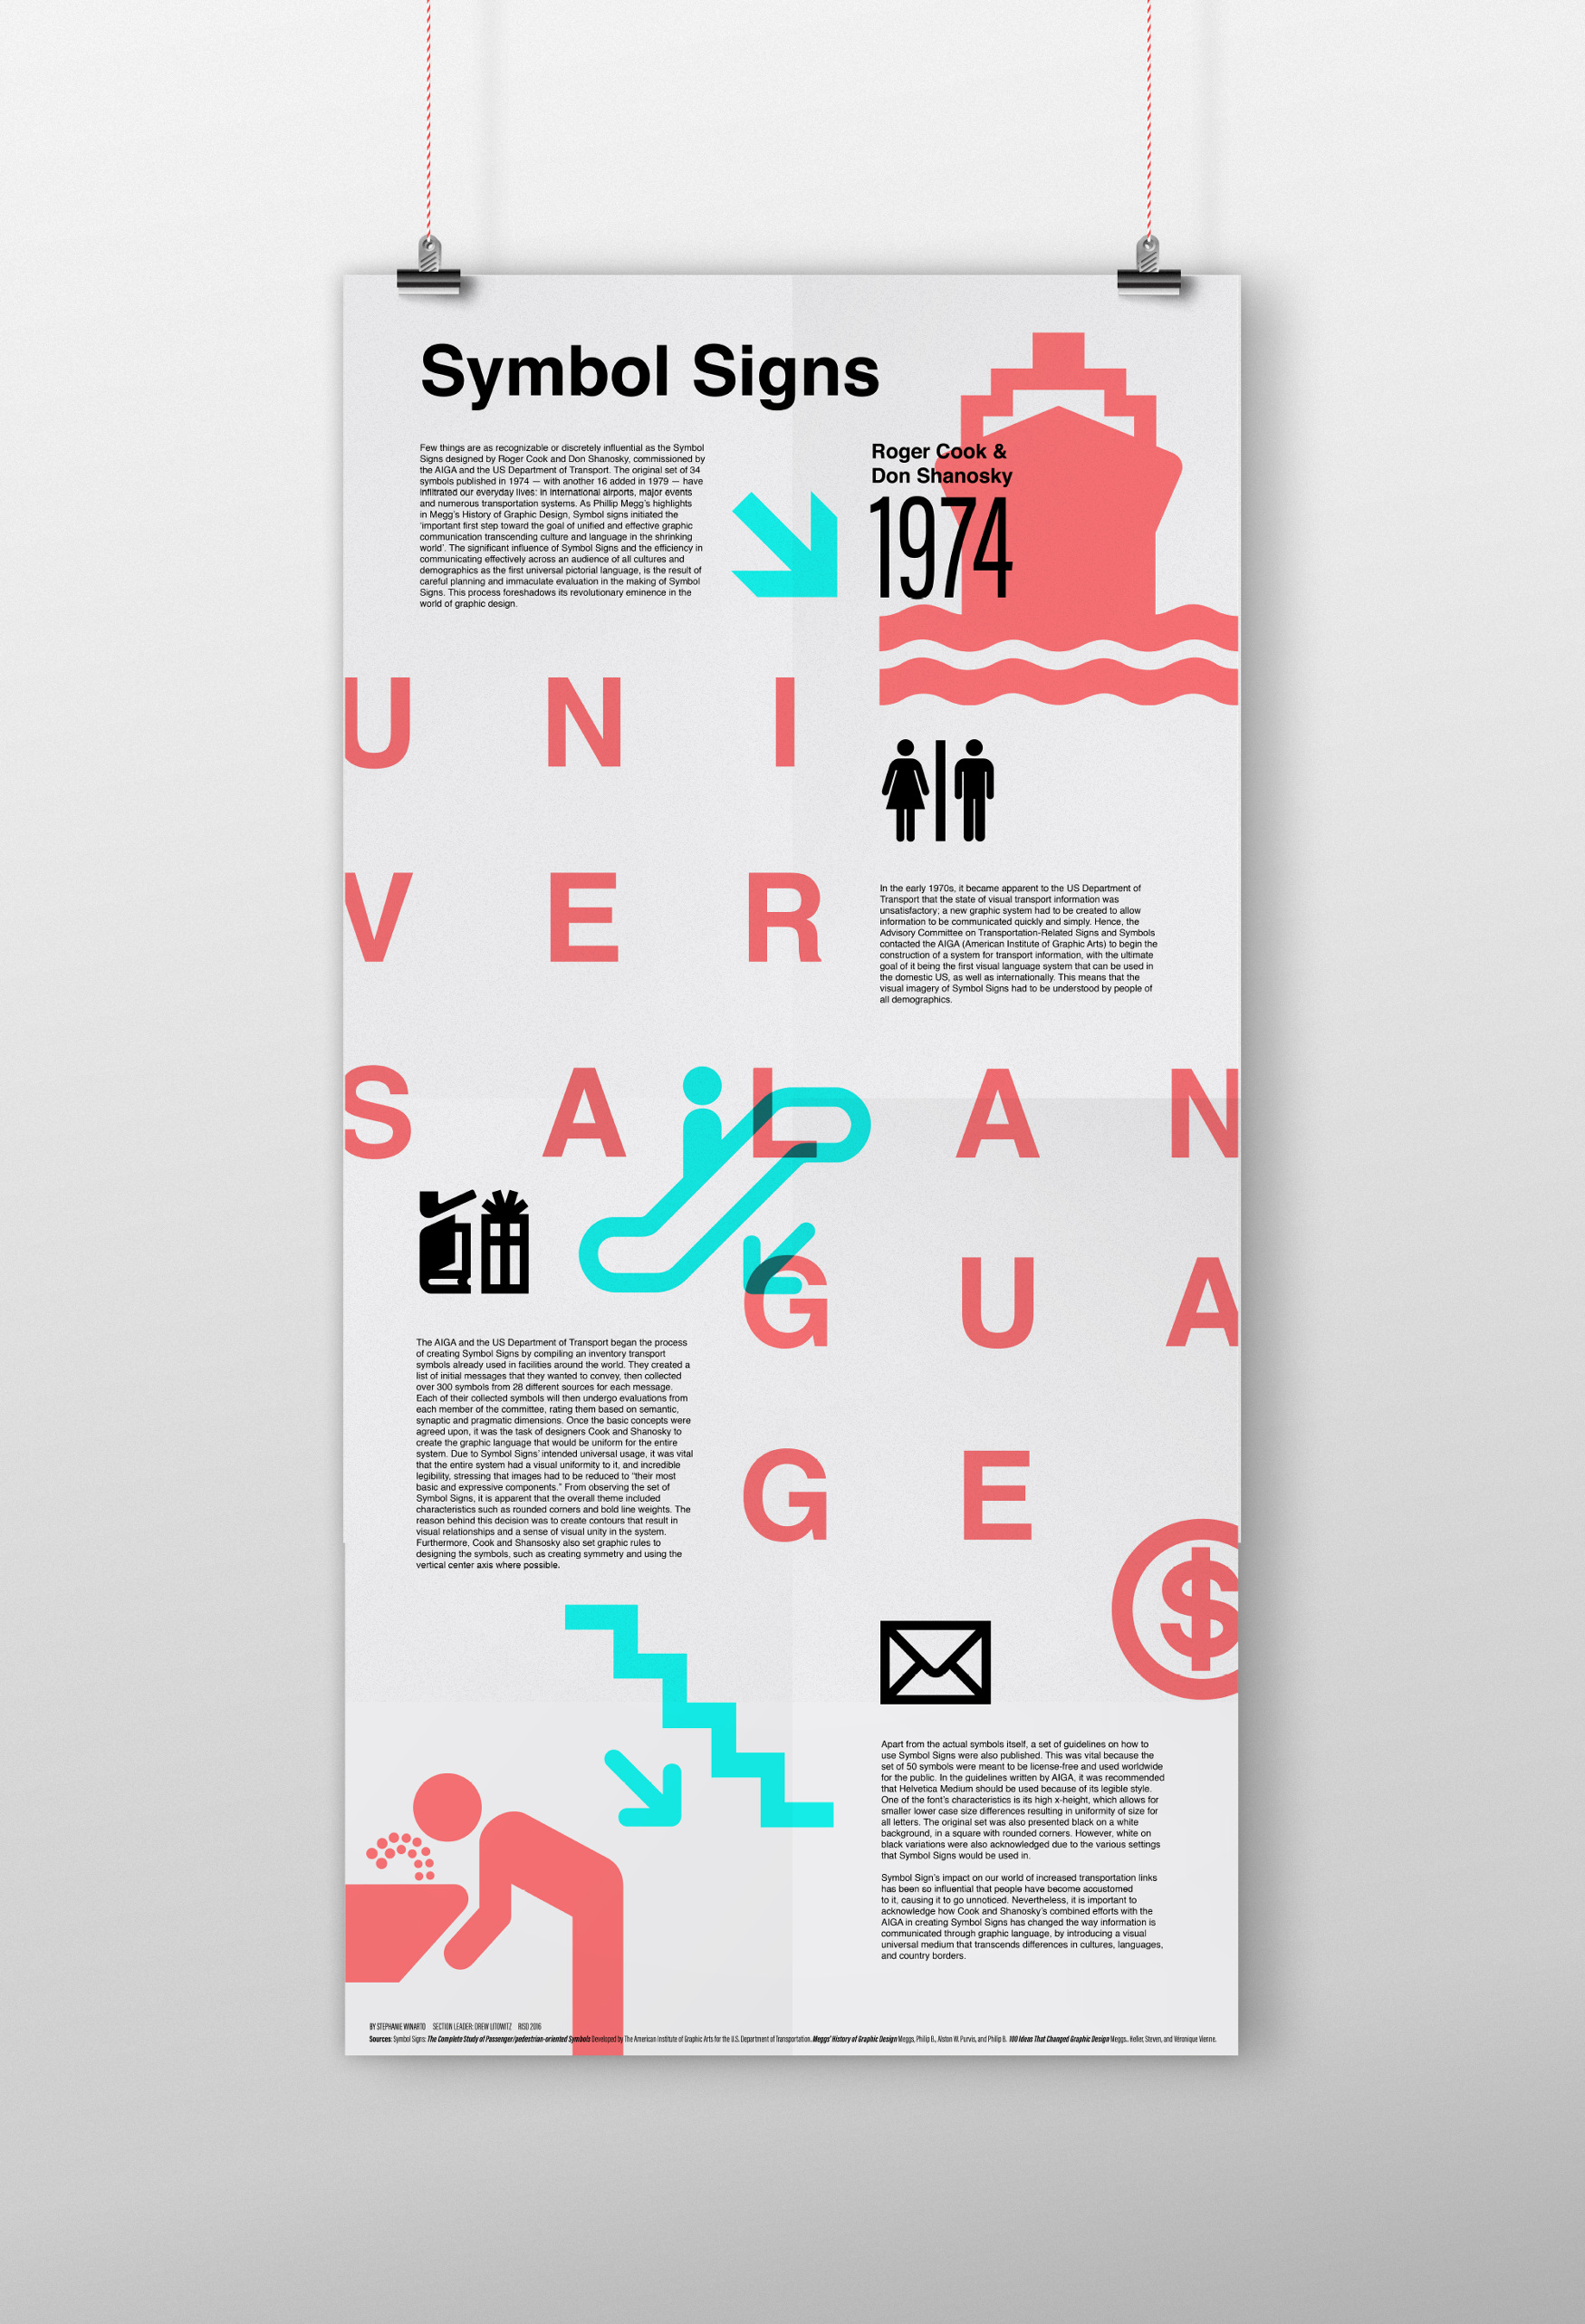 risd essay svg portfolio preparation course page ashcan studio of  stephaniewinarto poster and essay on the set of symbol signs created by roger cook and don